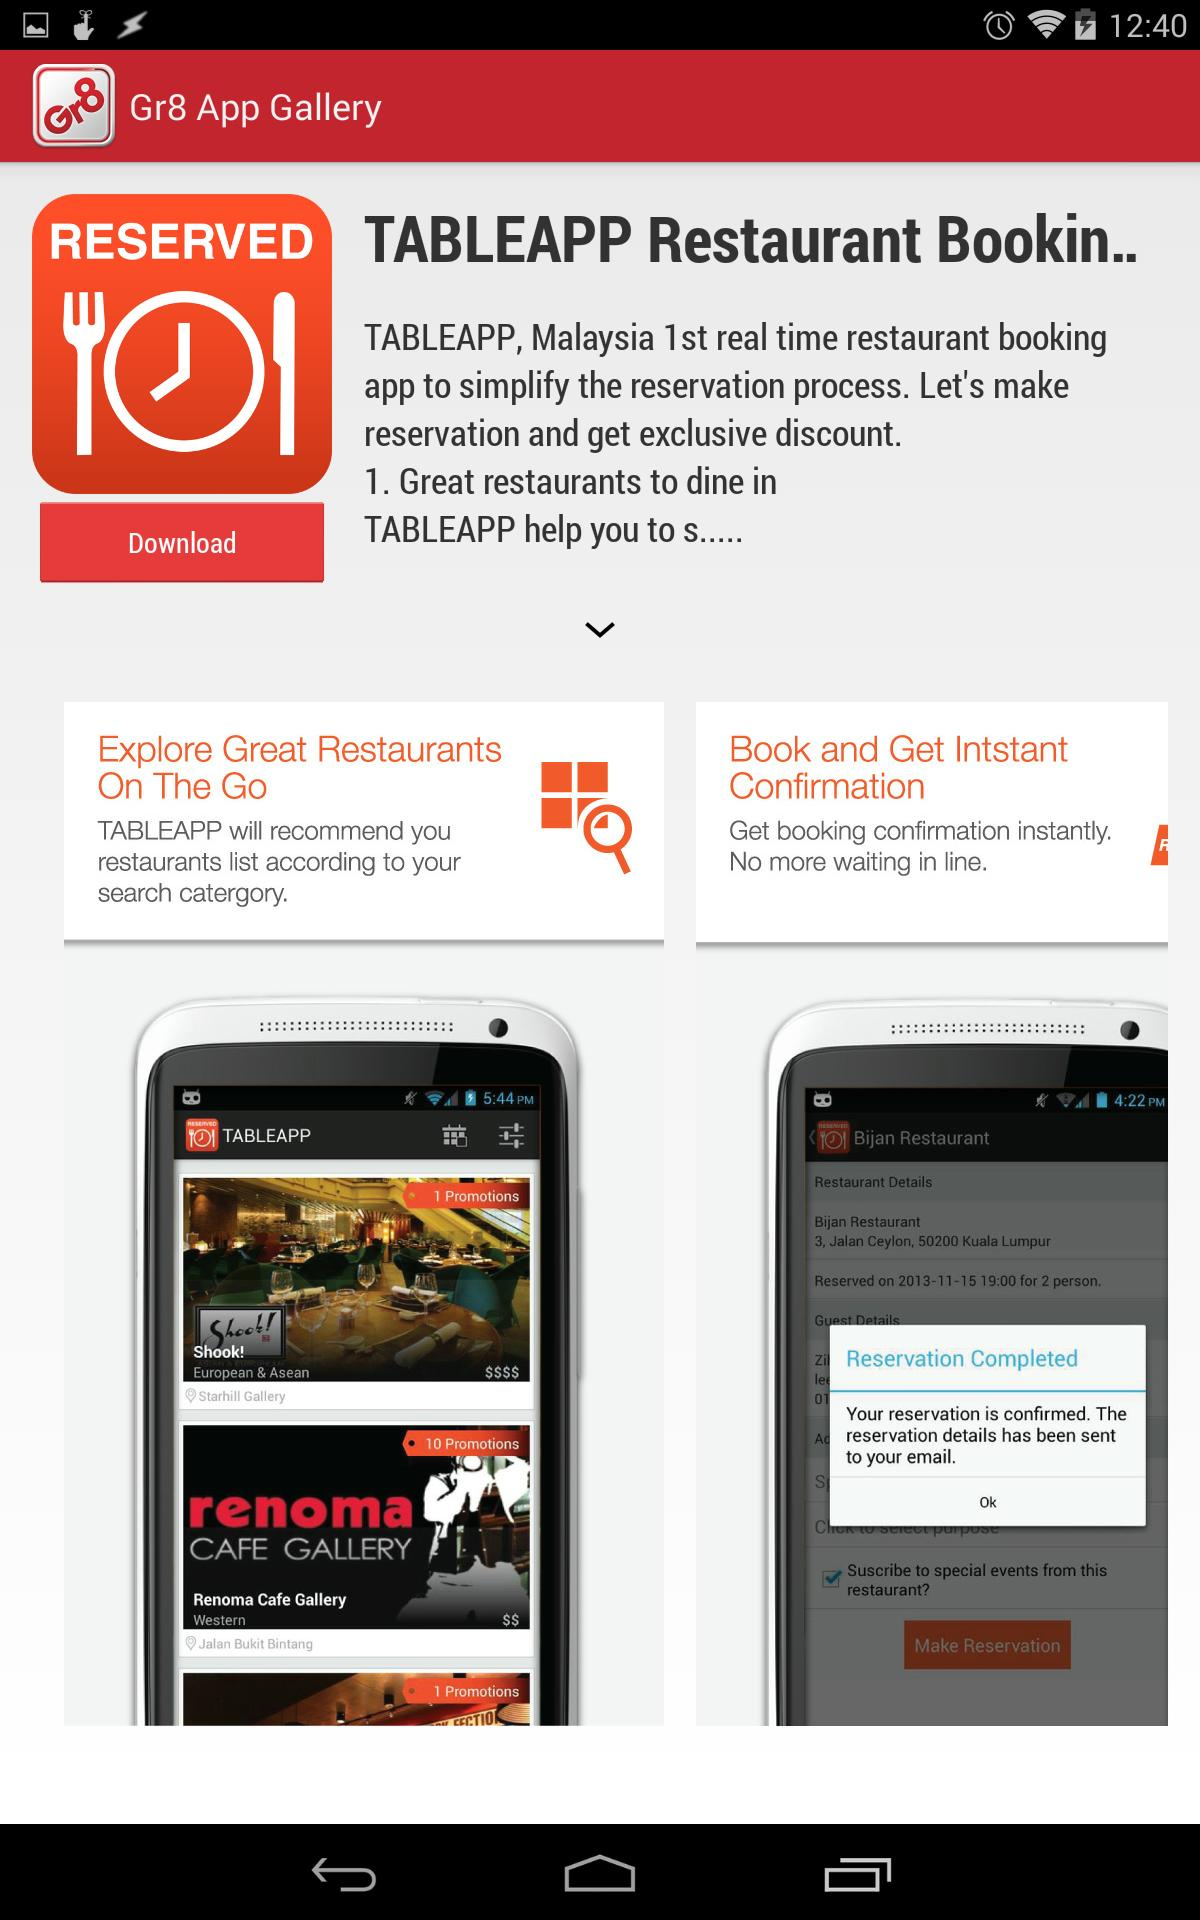 Malay Mail GR8 for Huawei for Android - APK Download